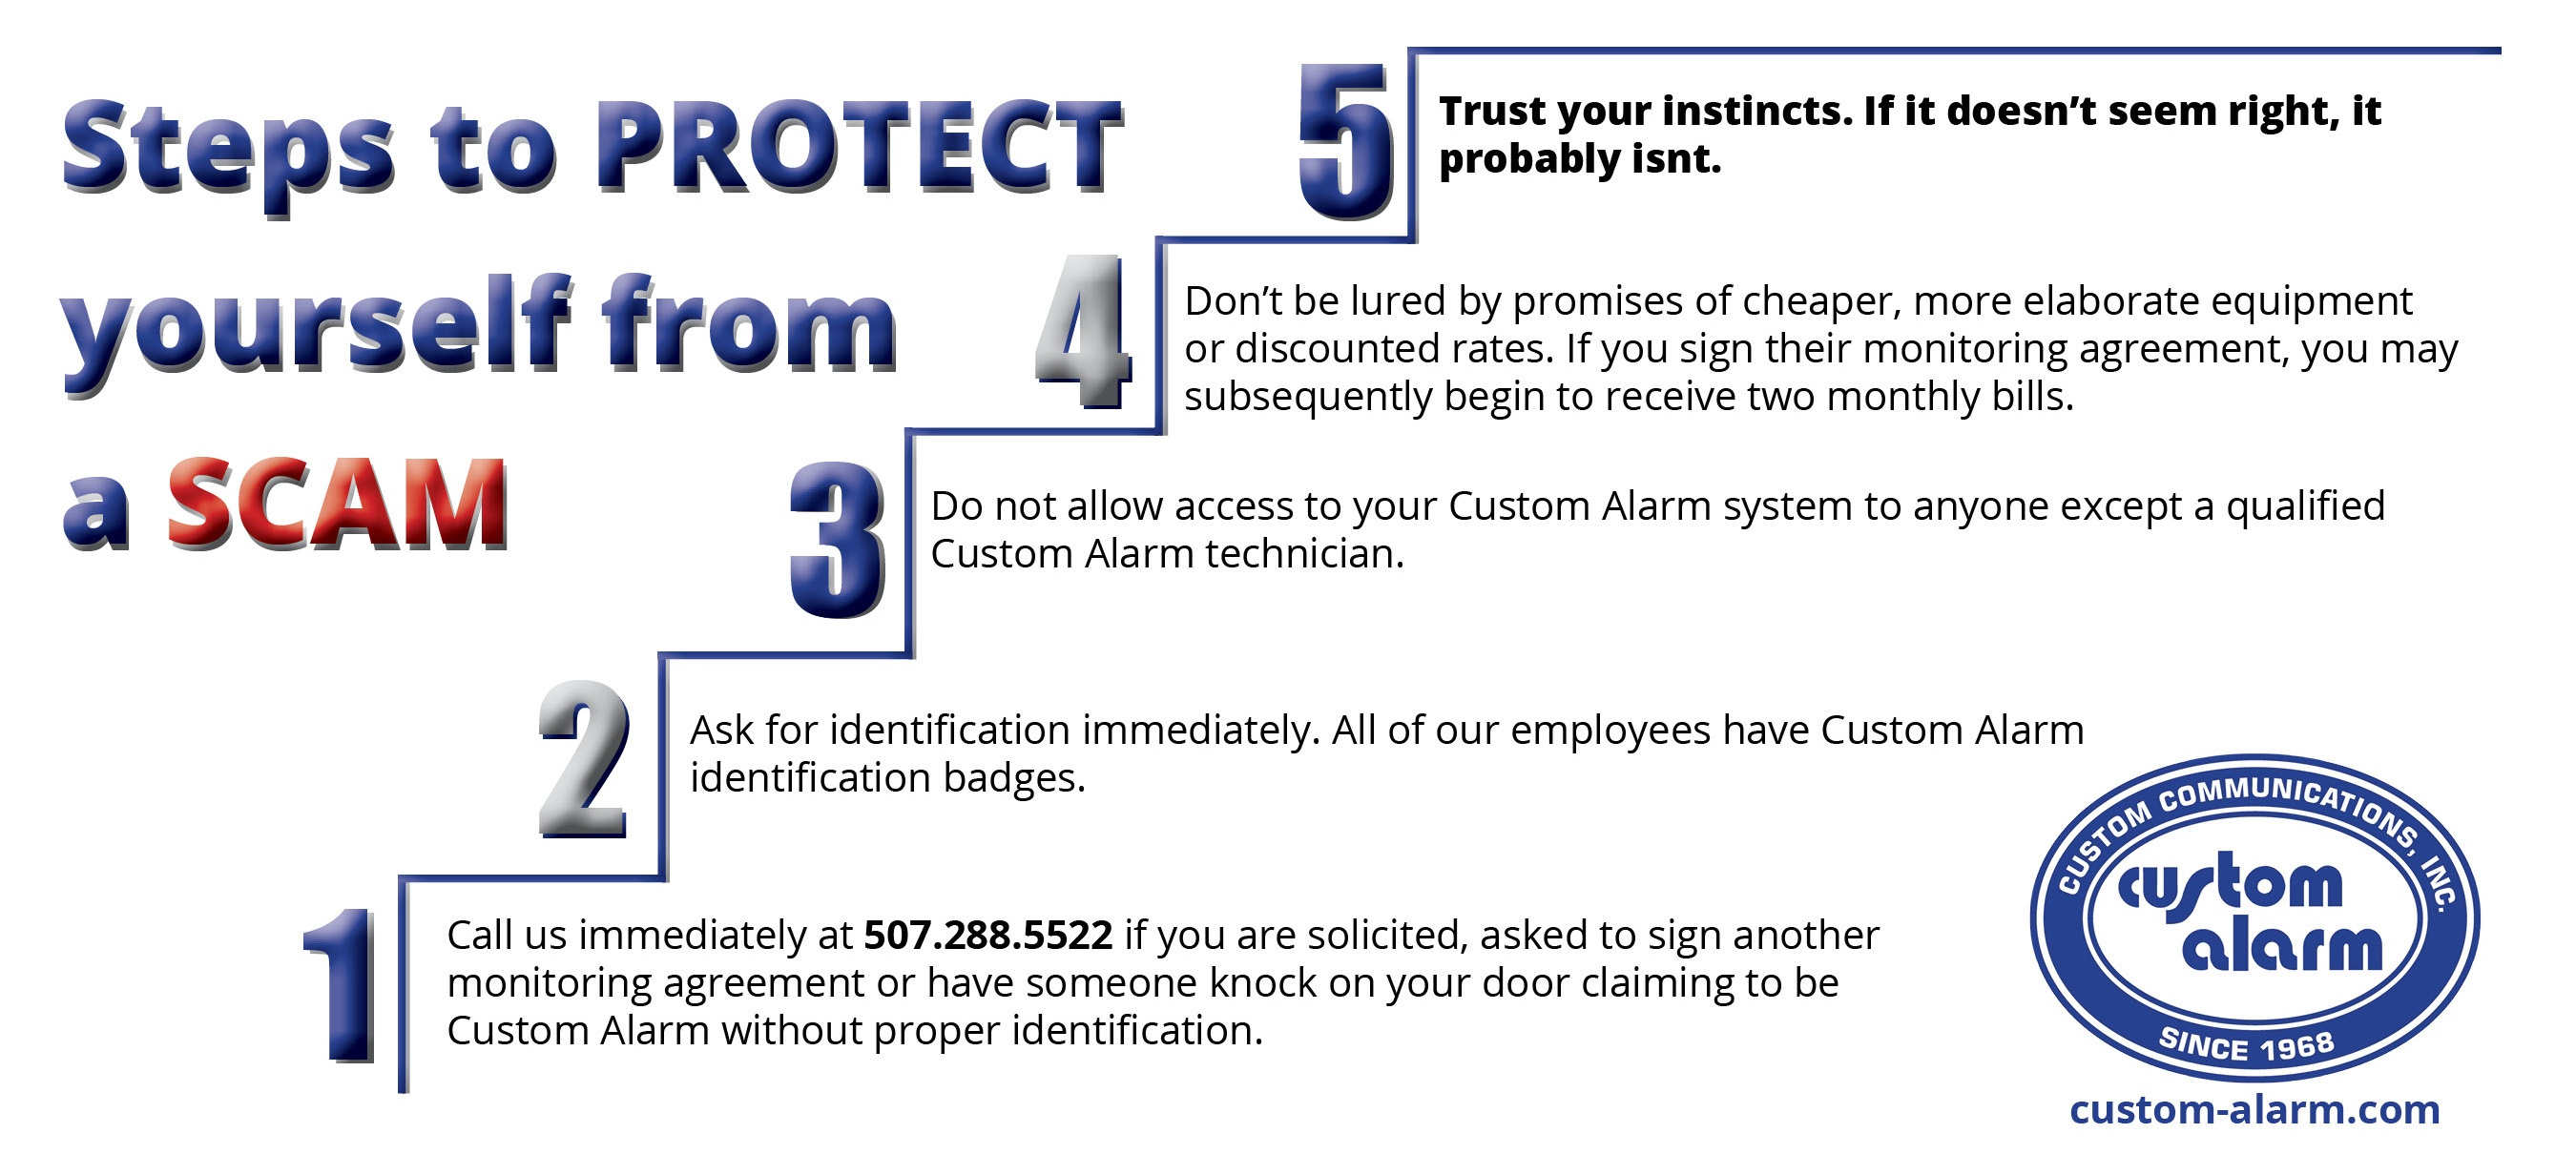 Steps to protect from scam-1